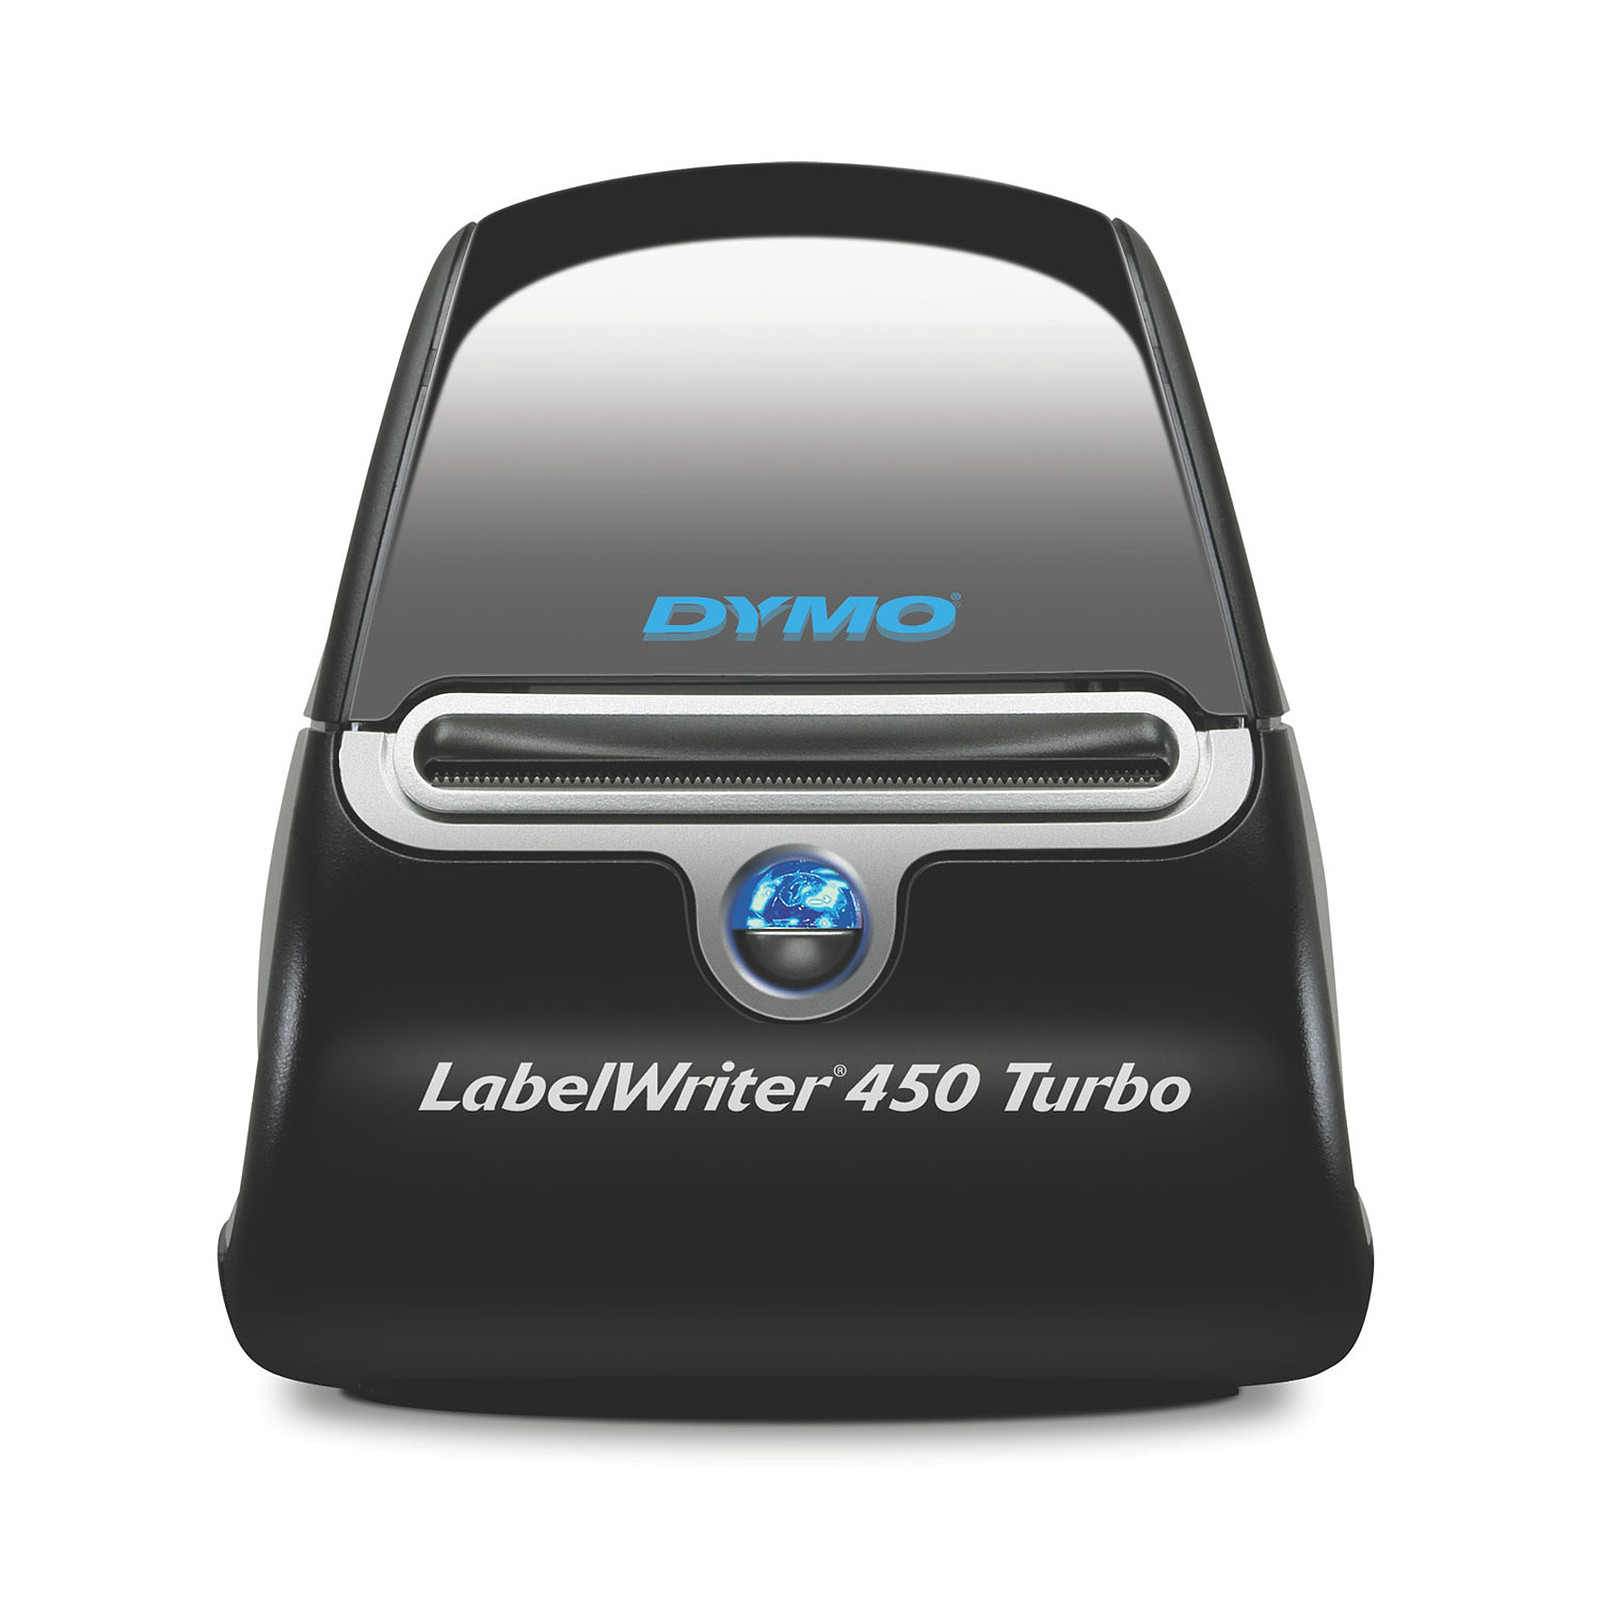 Dymo labelwriter 450 turbo imprimante thermique dymo sur for Dymo label templates for word